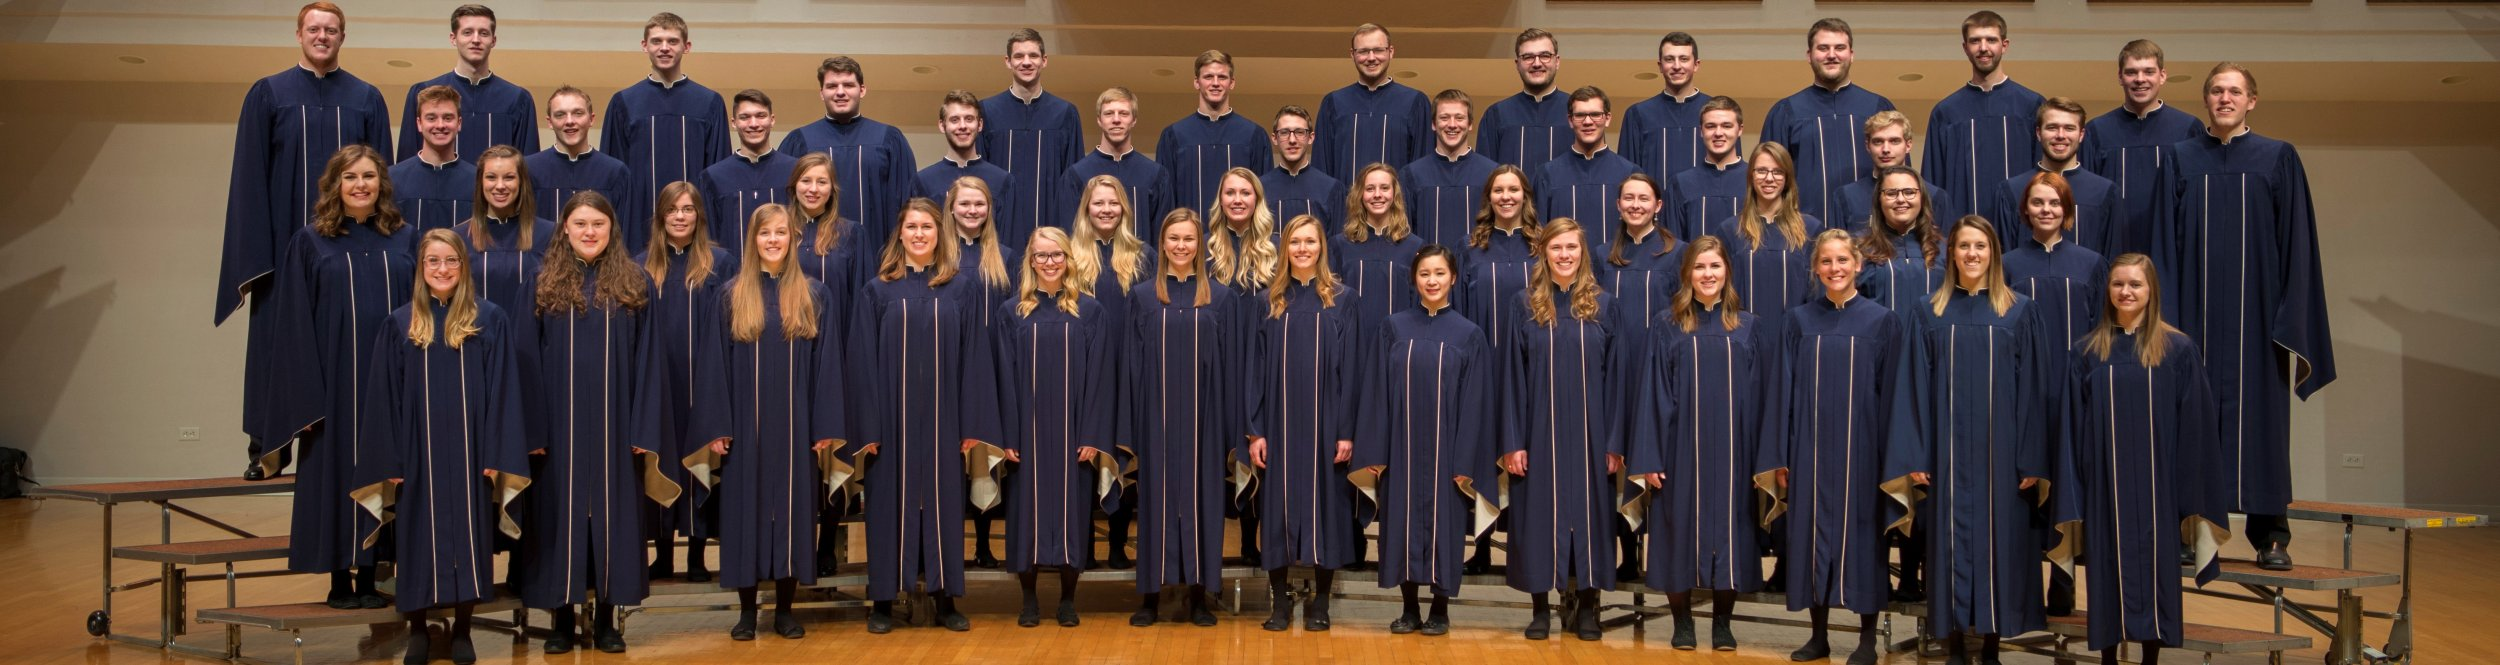 Students in choir robes stand on risers.